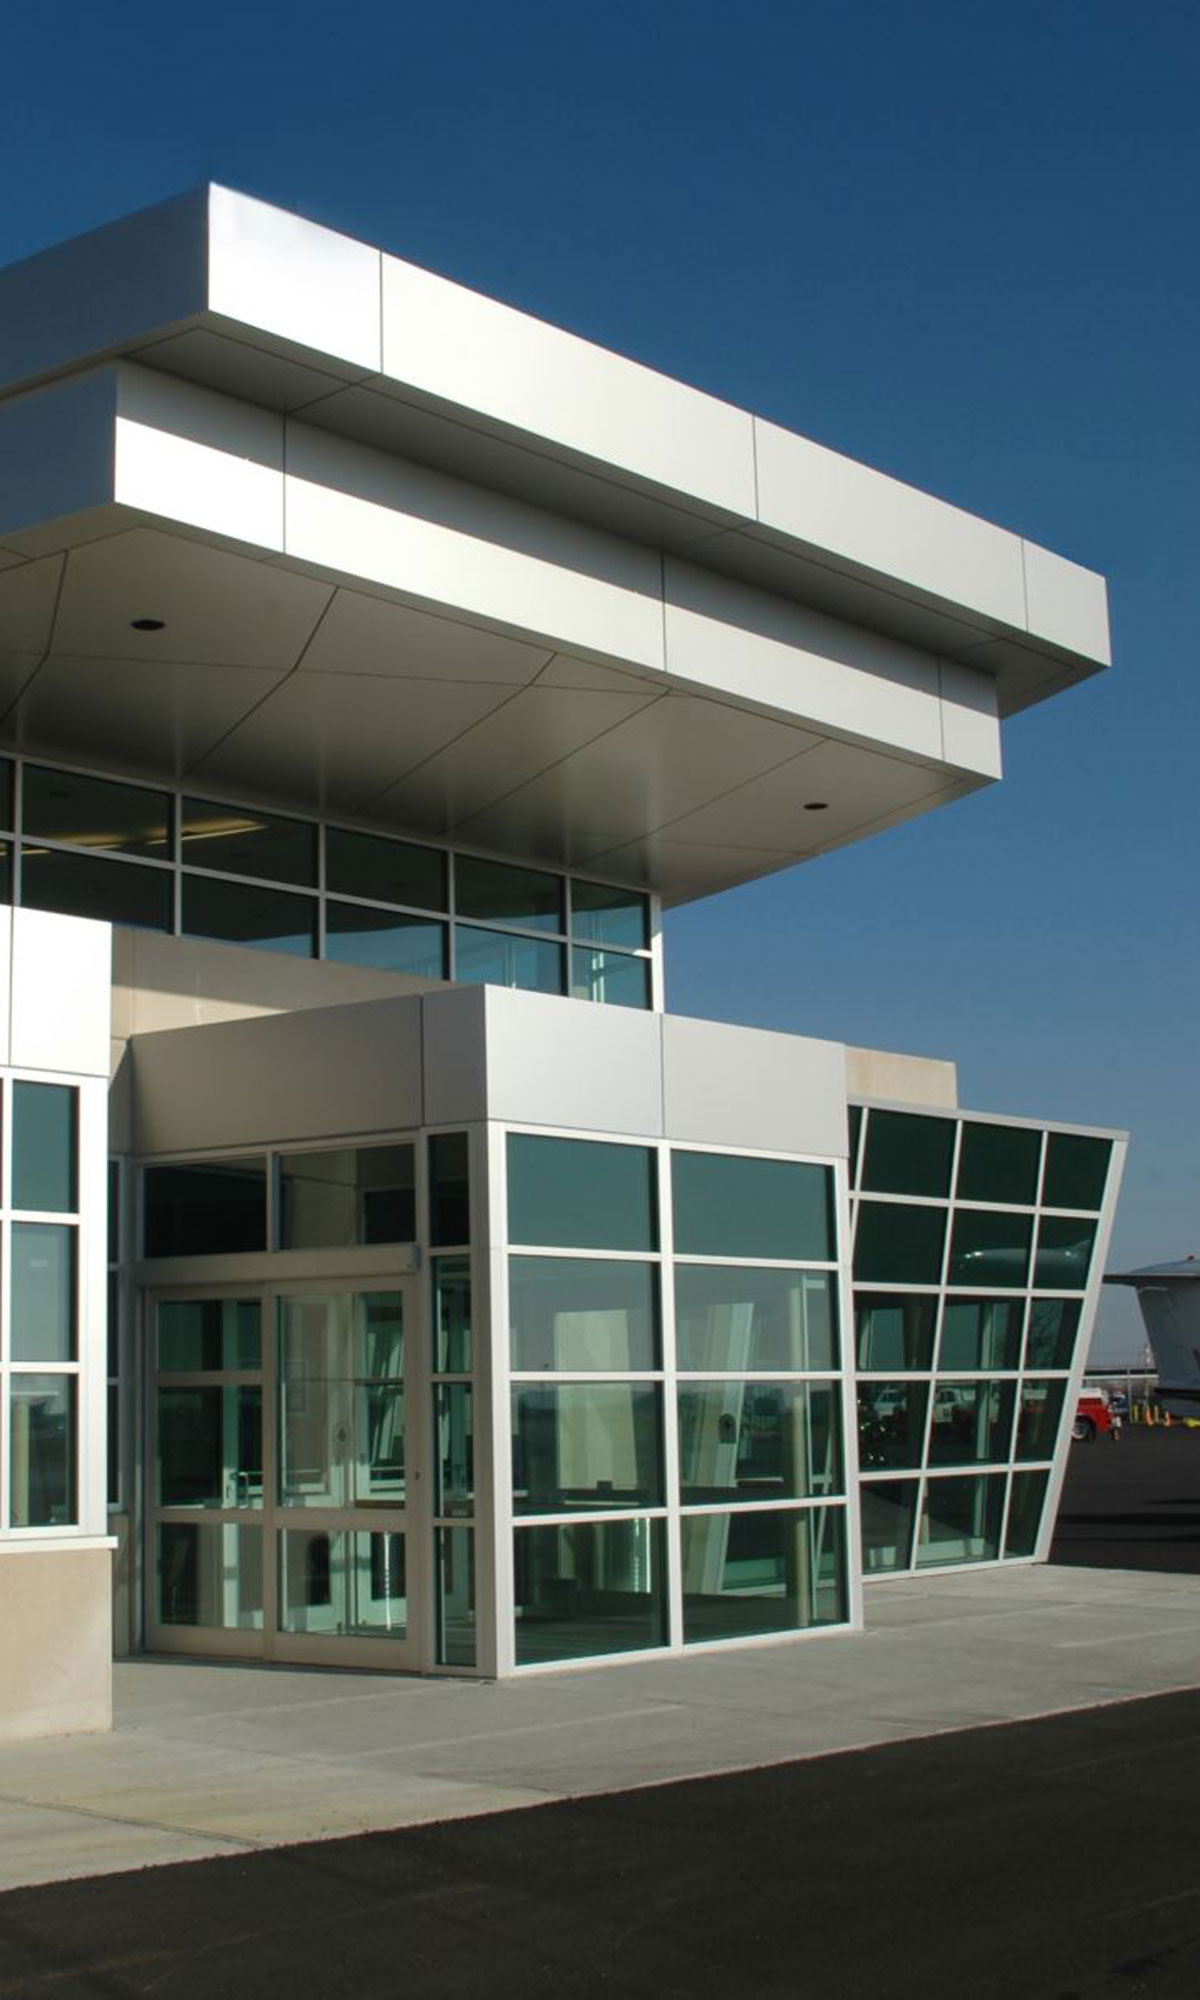 Signature Flight Supprt Executive Terminal Exterior 2